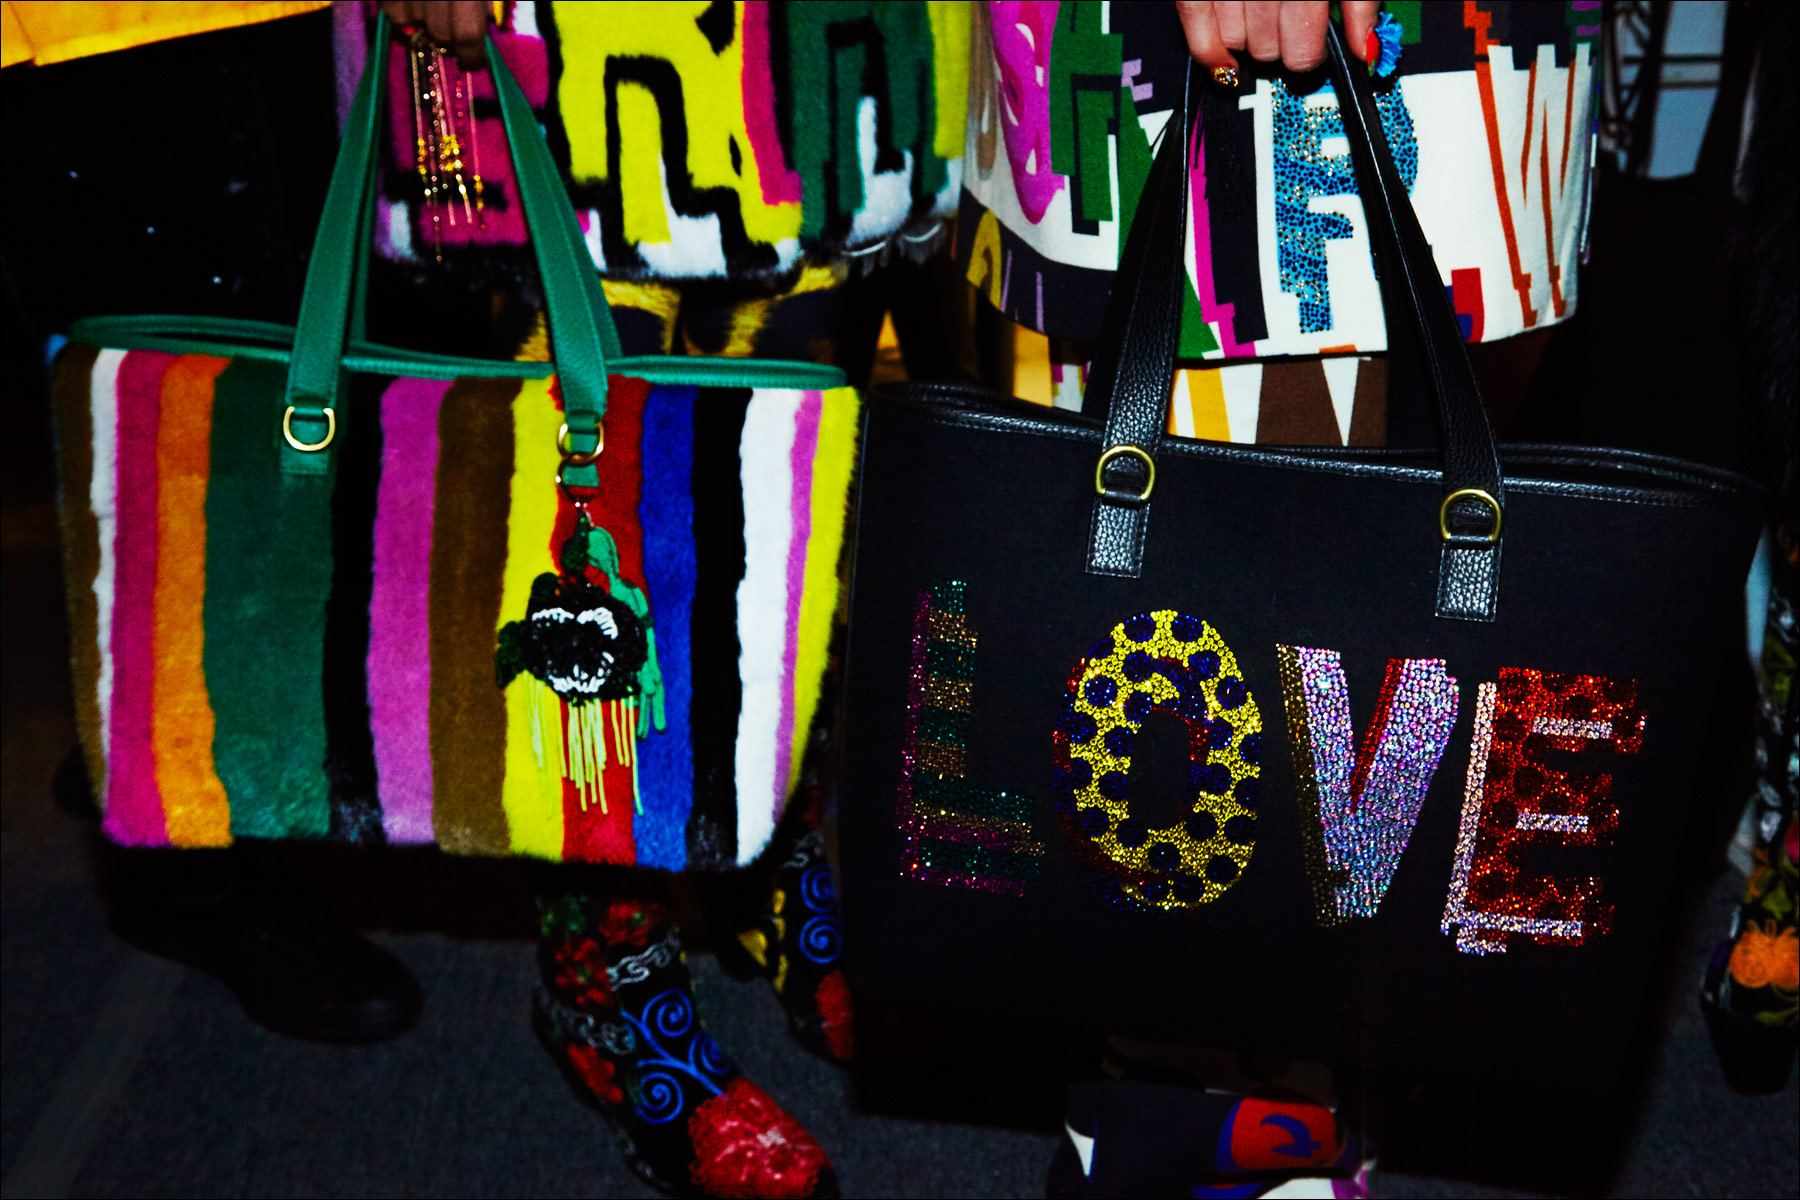 Libertine bags photographed backstage for Fall/Winter 2017. Photography by Alexander Thompson for Ponyboy magazine NY.